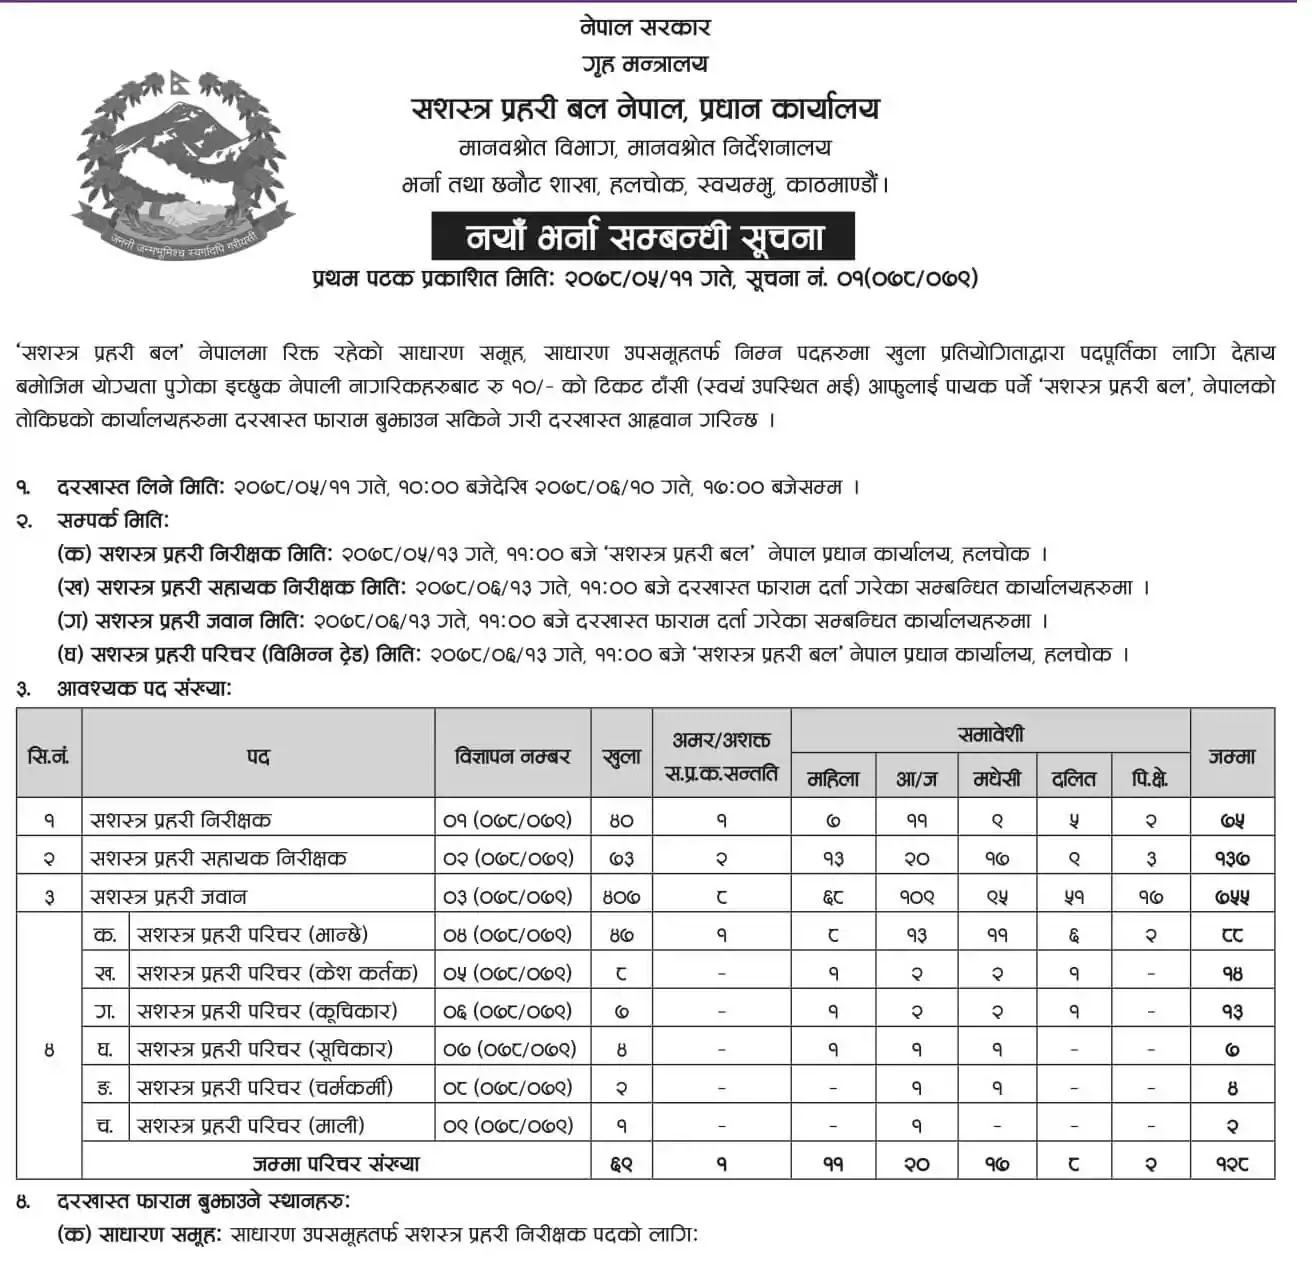 Job Vacancy In Nepal - Armed Police Force Vacancy Announcement 2078